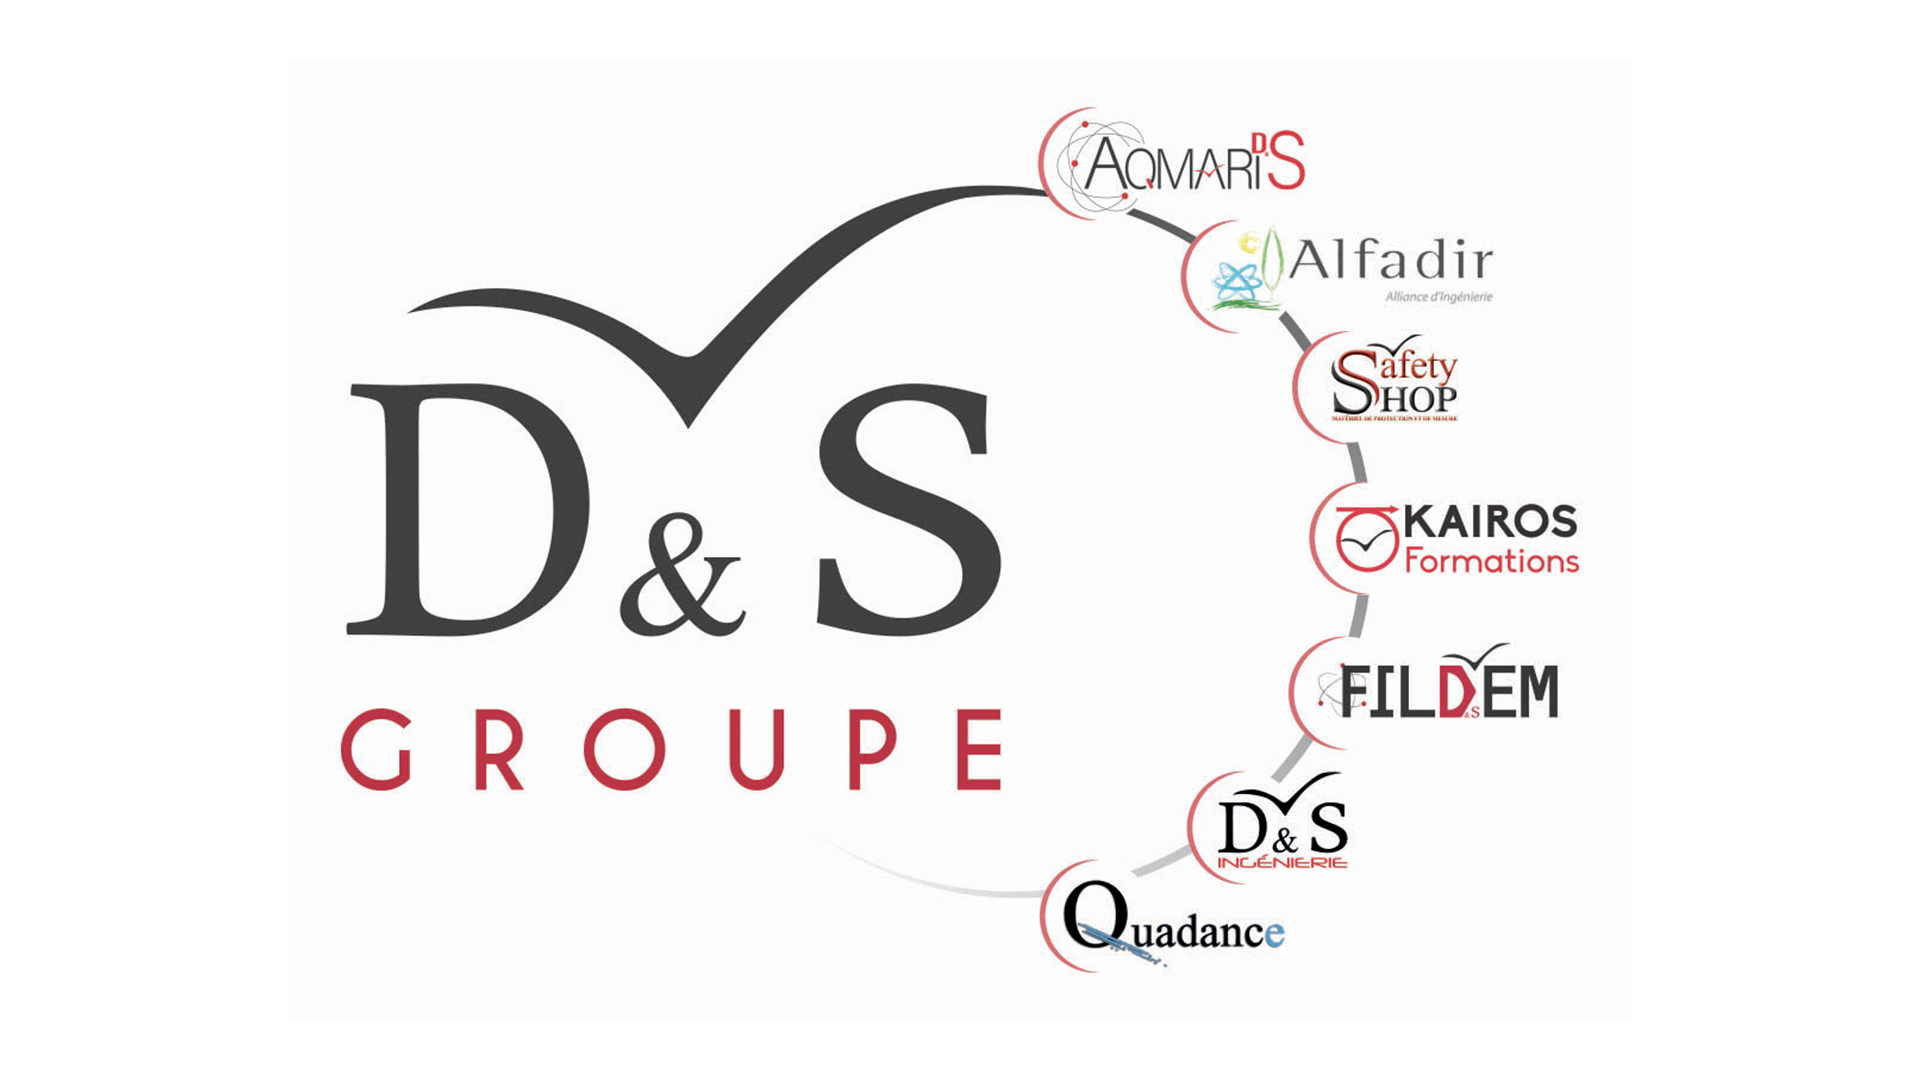 Groupe D & S